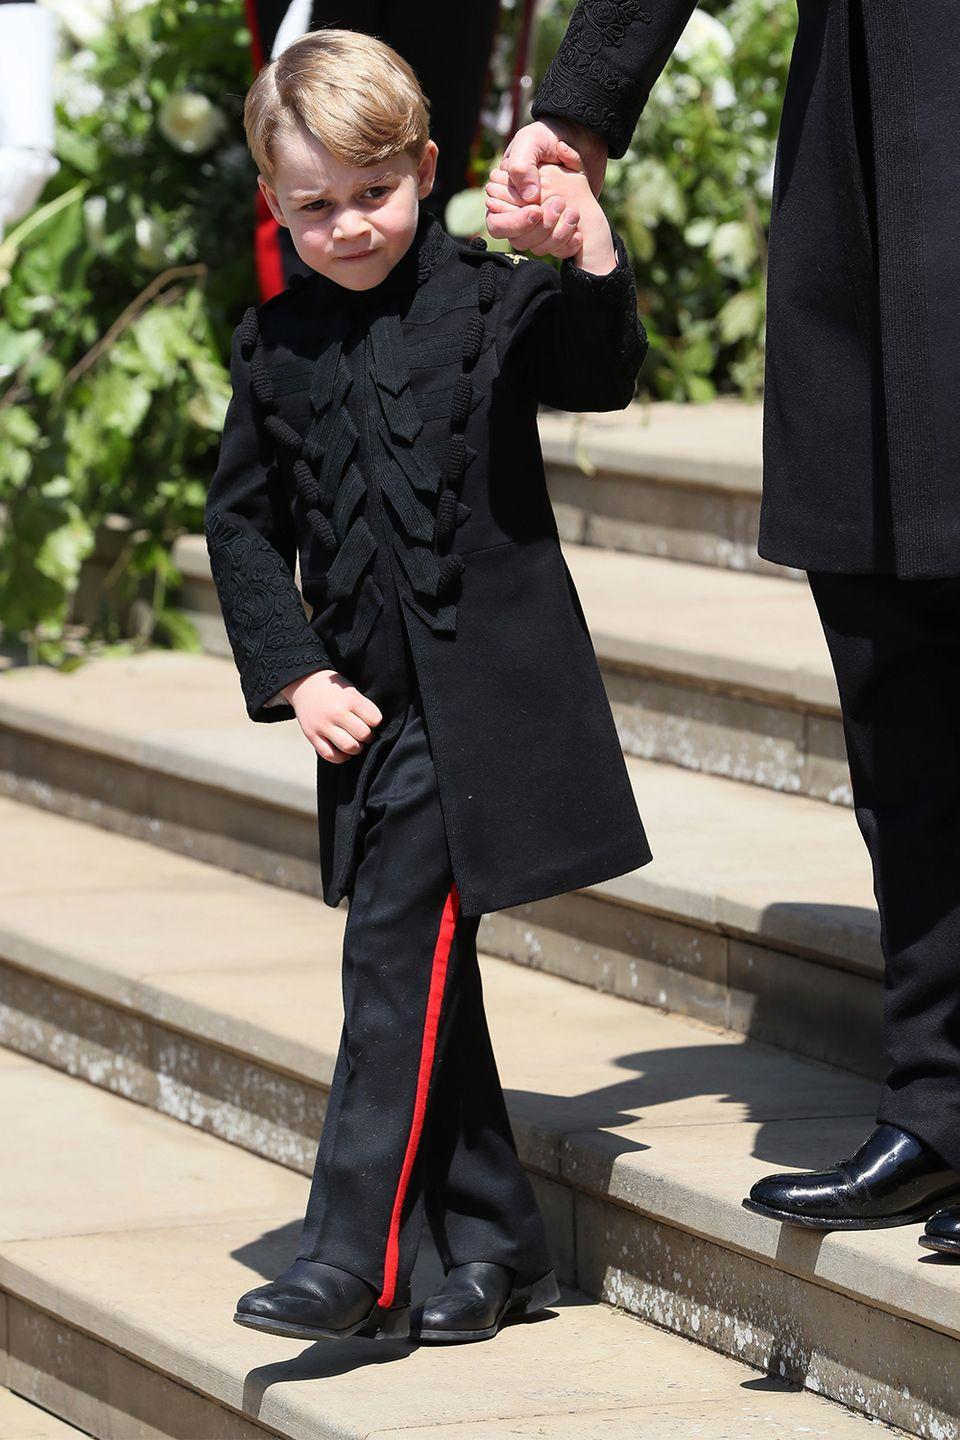 """<p>Quite possibly the weirdest royal family rule is that boys are expected to wear shorts at all times (yup, even through England's harsh winter climate). George made his <a href=""""https://www.marieclaire.com/fashion/a20870363/prince-george-wears-pants-royal-wedding/"""" rel=""""nofollow noopener"""" target=""""_blank"""" data-ylk=""""slk:first-ever debut in pants"""" class=""""link rapid-noclick-resp"""">first-ever debut in pants</a> at Harry and Meghan's wedding.<br></p>"""